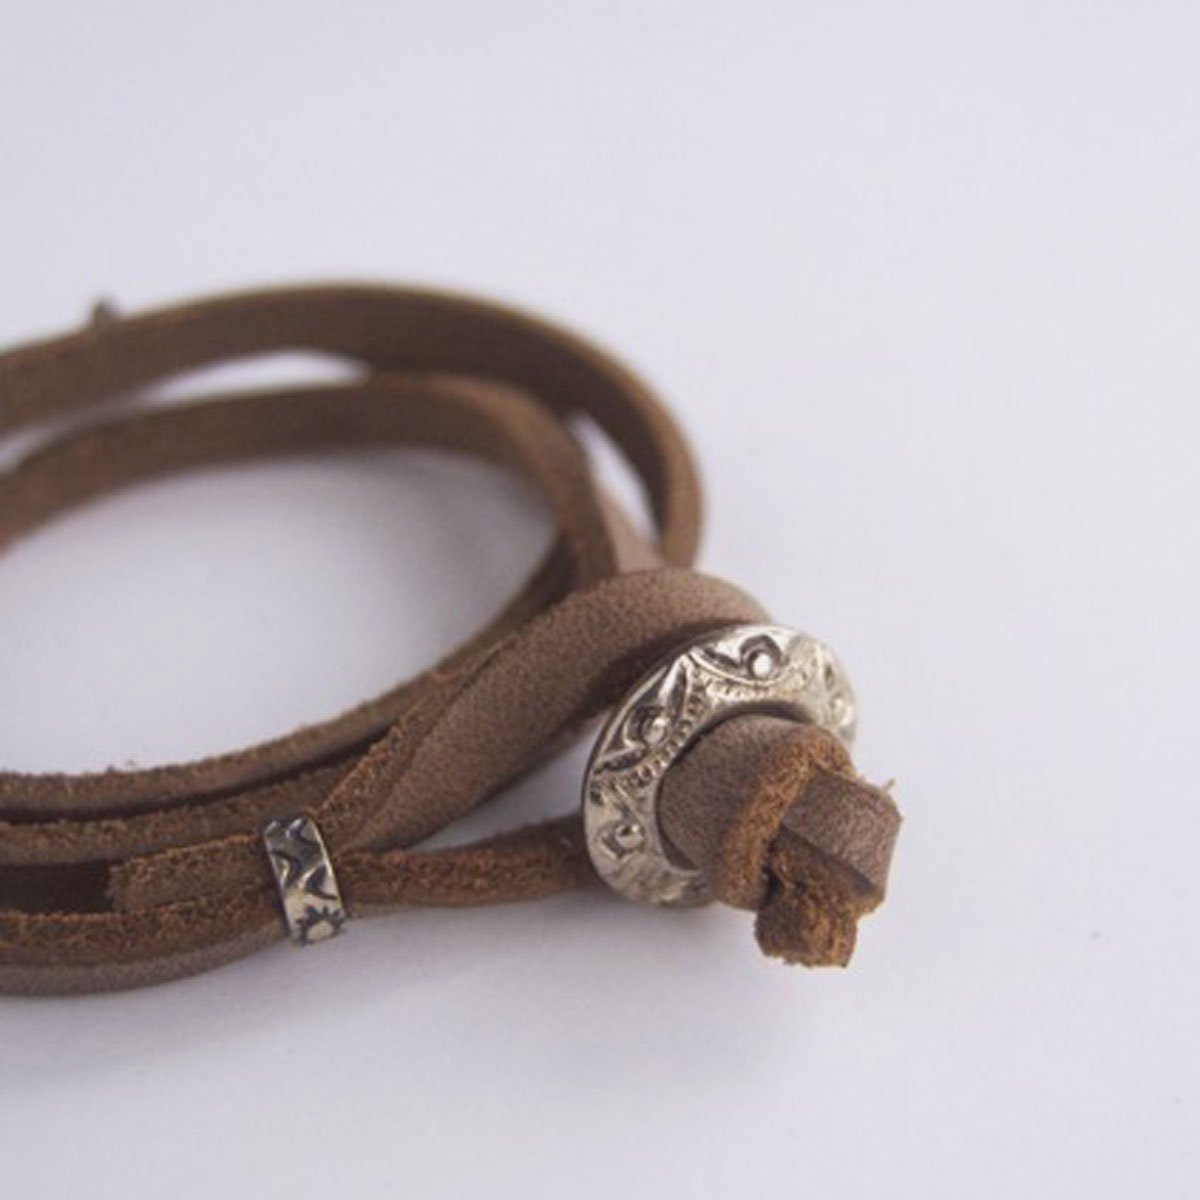 MOTO CONTEMPORARY NATIVE 3連LEATHER BRACELET (NATURAL)3